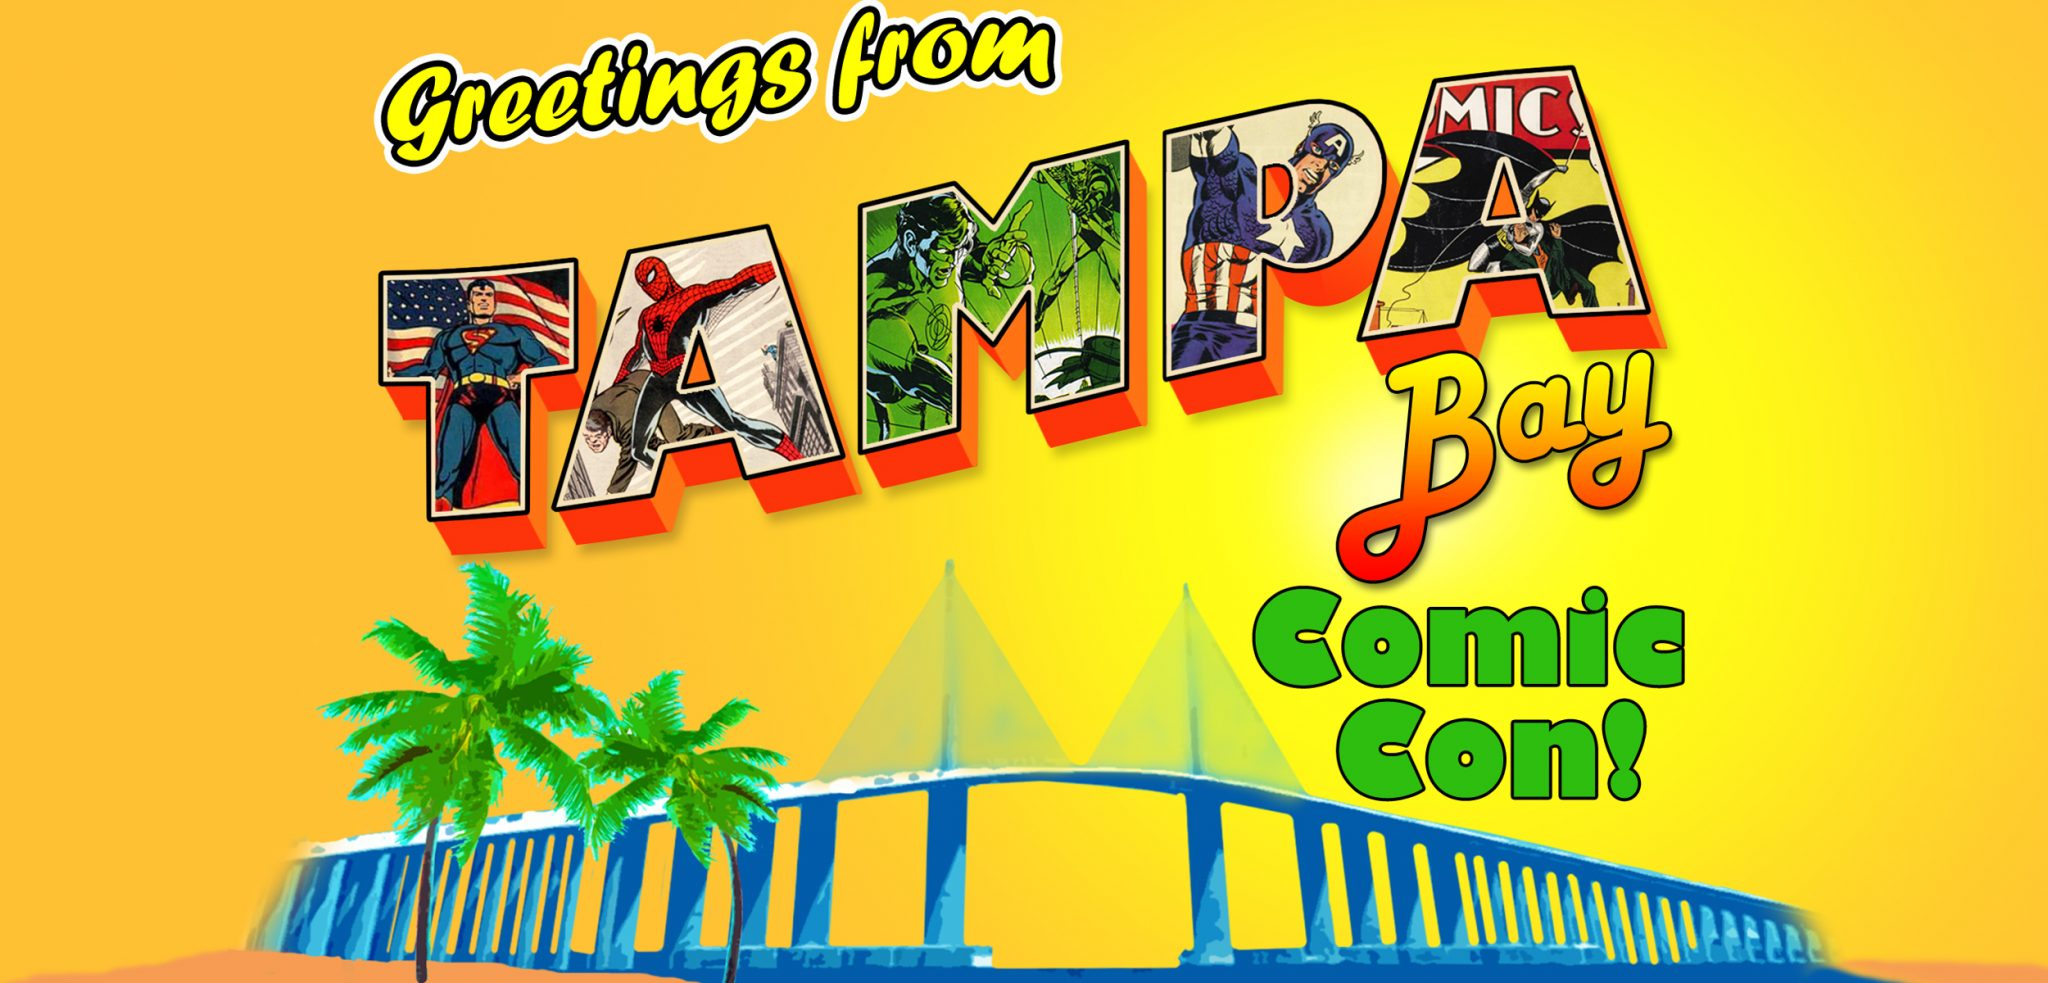 TampaBayComicCon Newsletter Templates May on may newsletter header, may newsletter clipart, may newsletter theme, may newsletter sample, may newsletter title, calendar template, may newsletter cover, may school newsletter, may newsletter background,